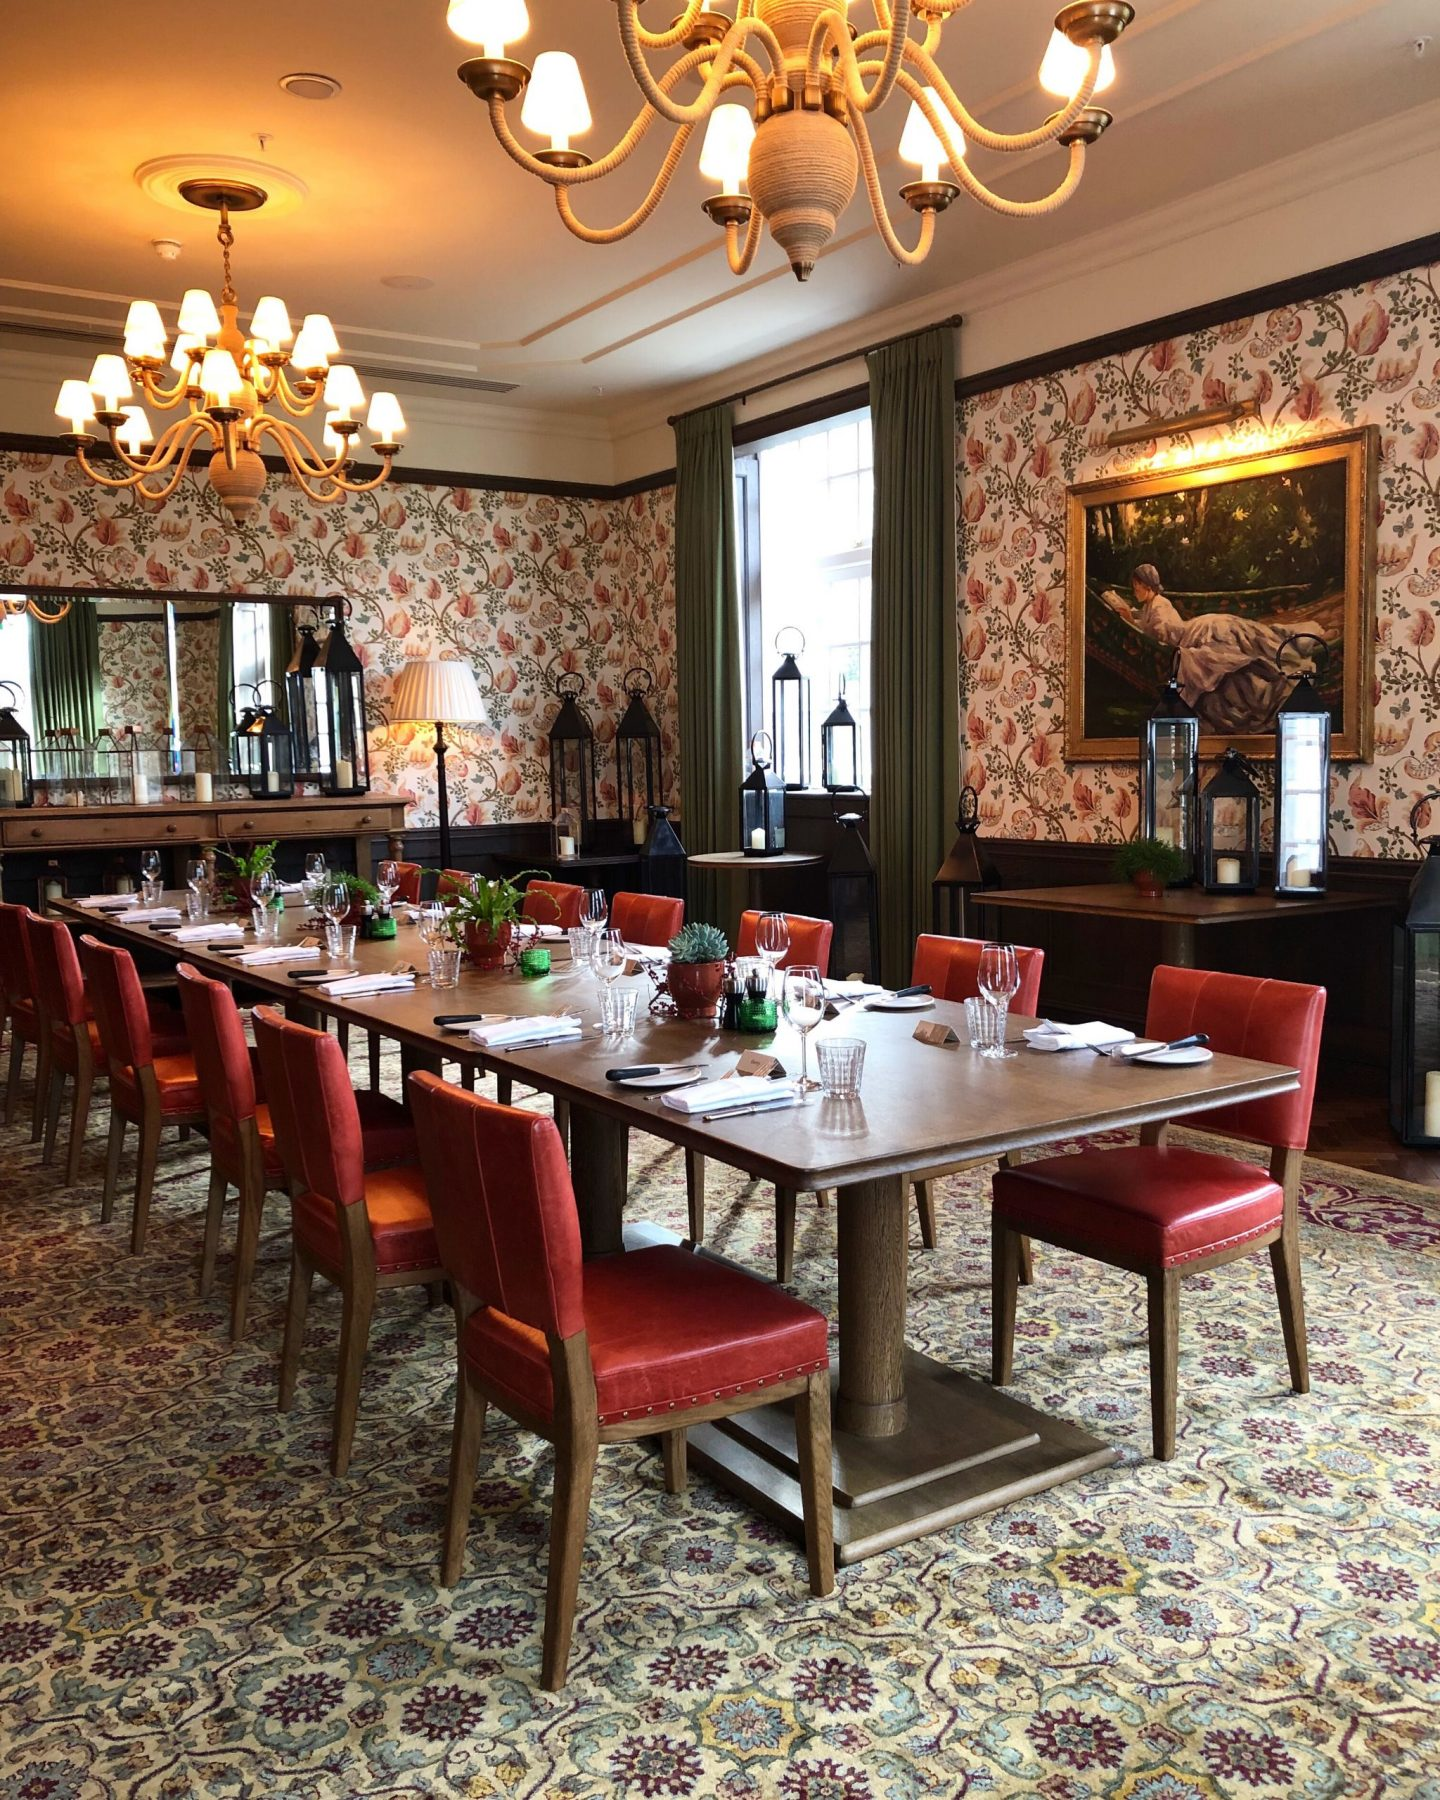 The Seasonal Social Supper at The Wild Carrot, Four Seasons Hampshire